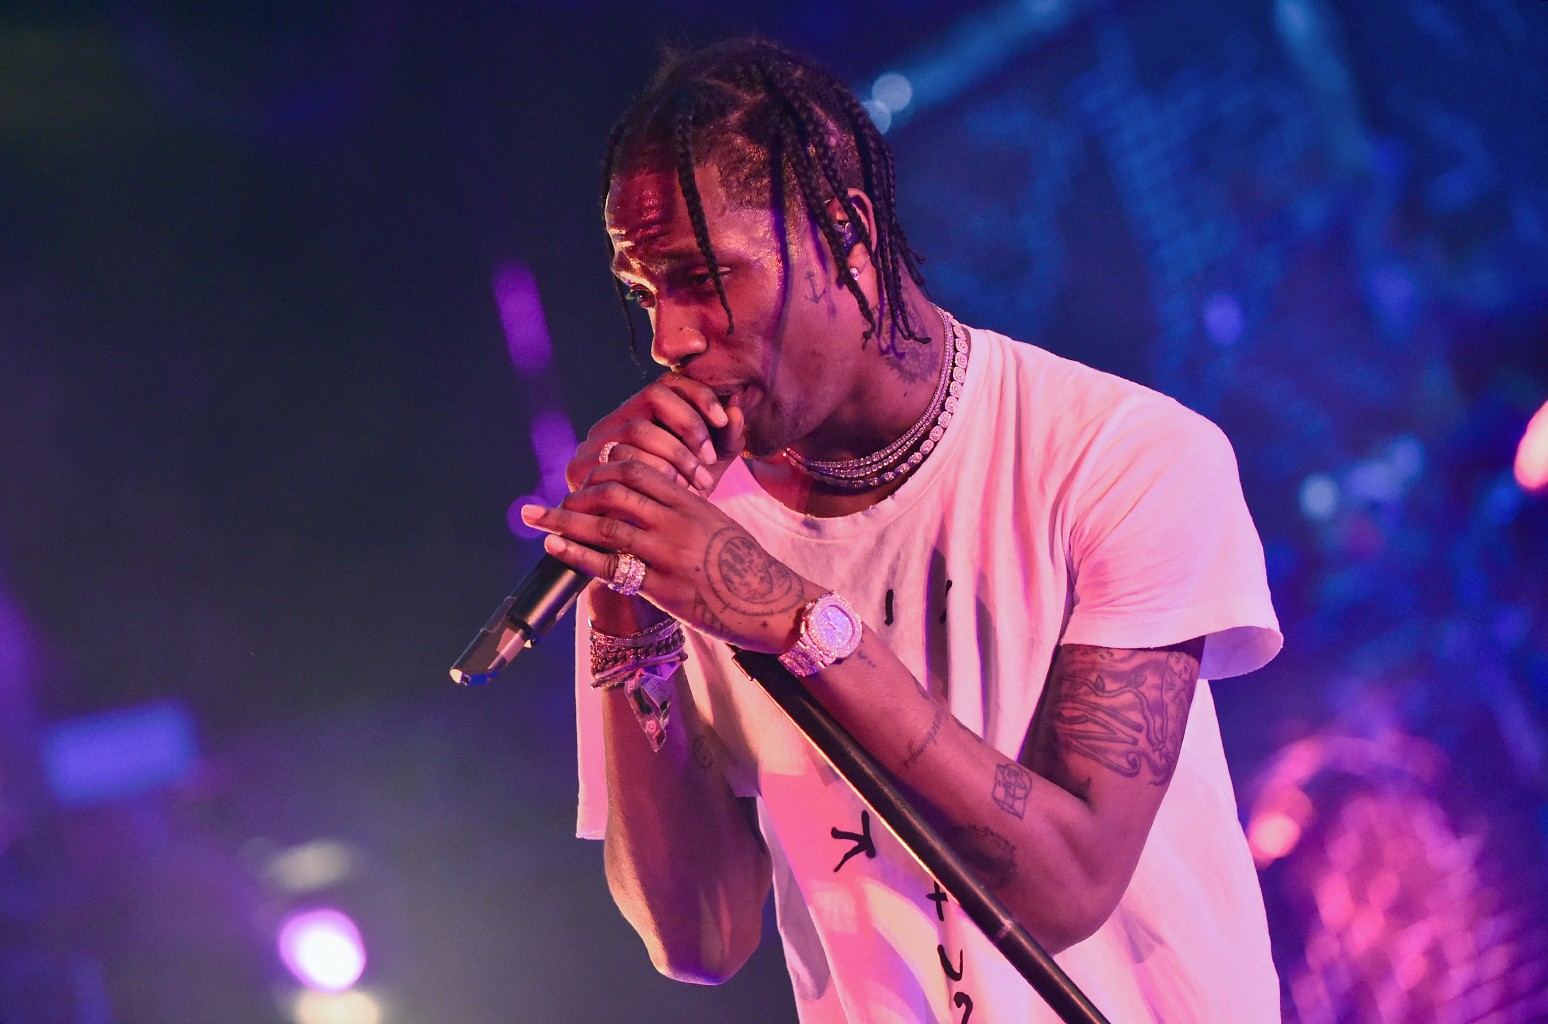 Travis Scott performs during the 2017 Coachella Valley Music & Arts Festival at the Empire Polo Club on April 21, 2017 in Indio, Calif.